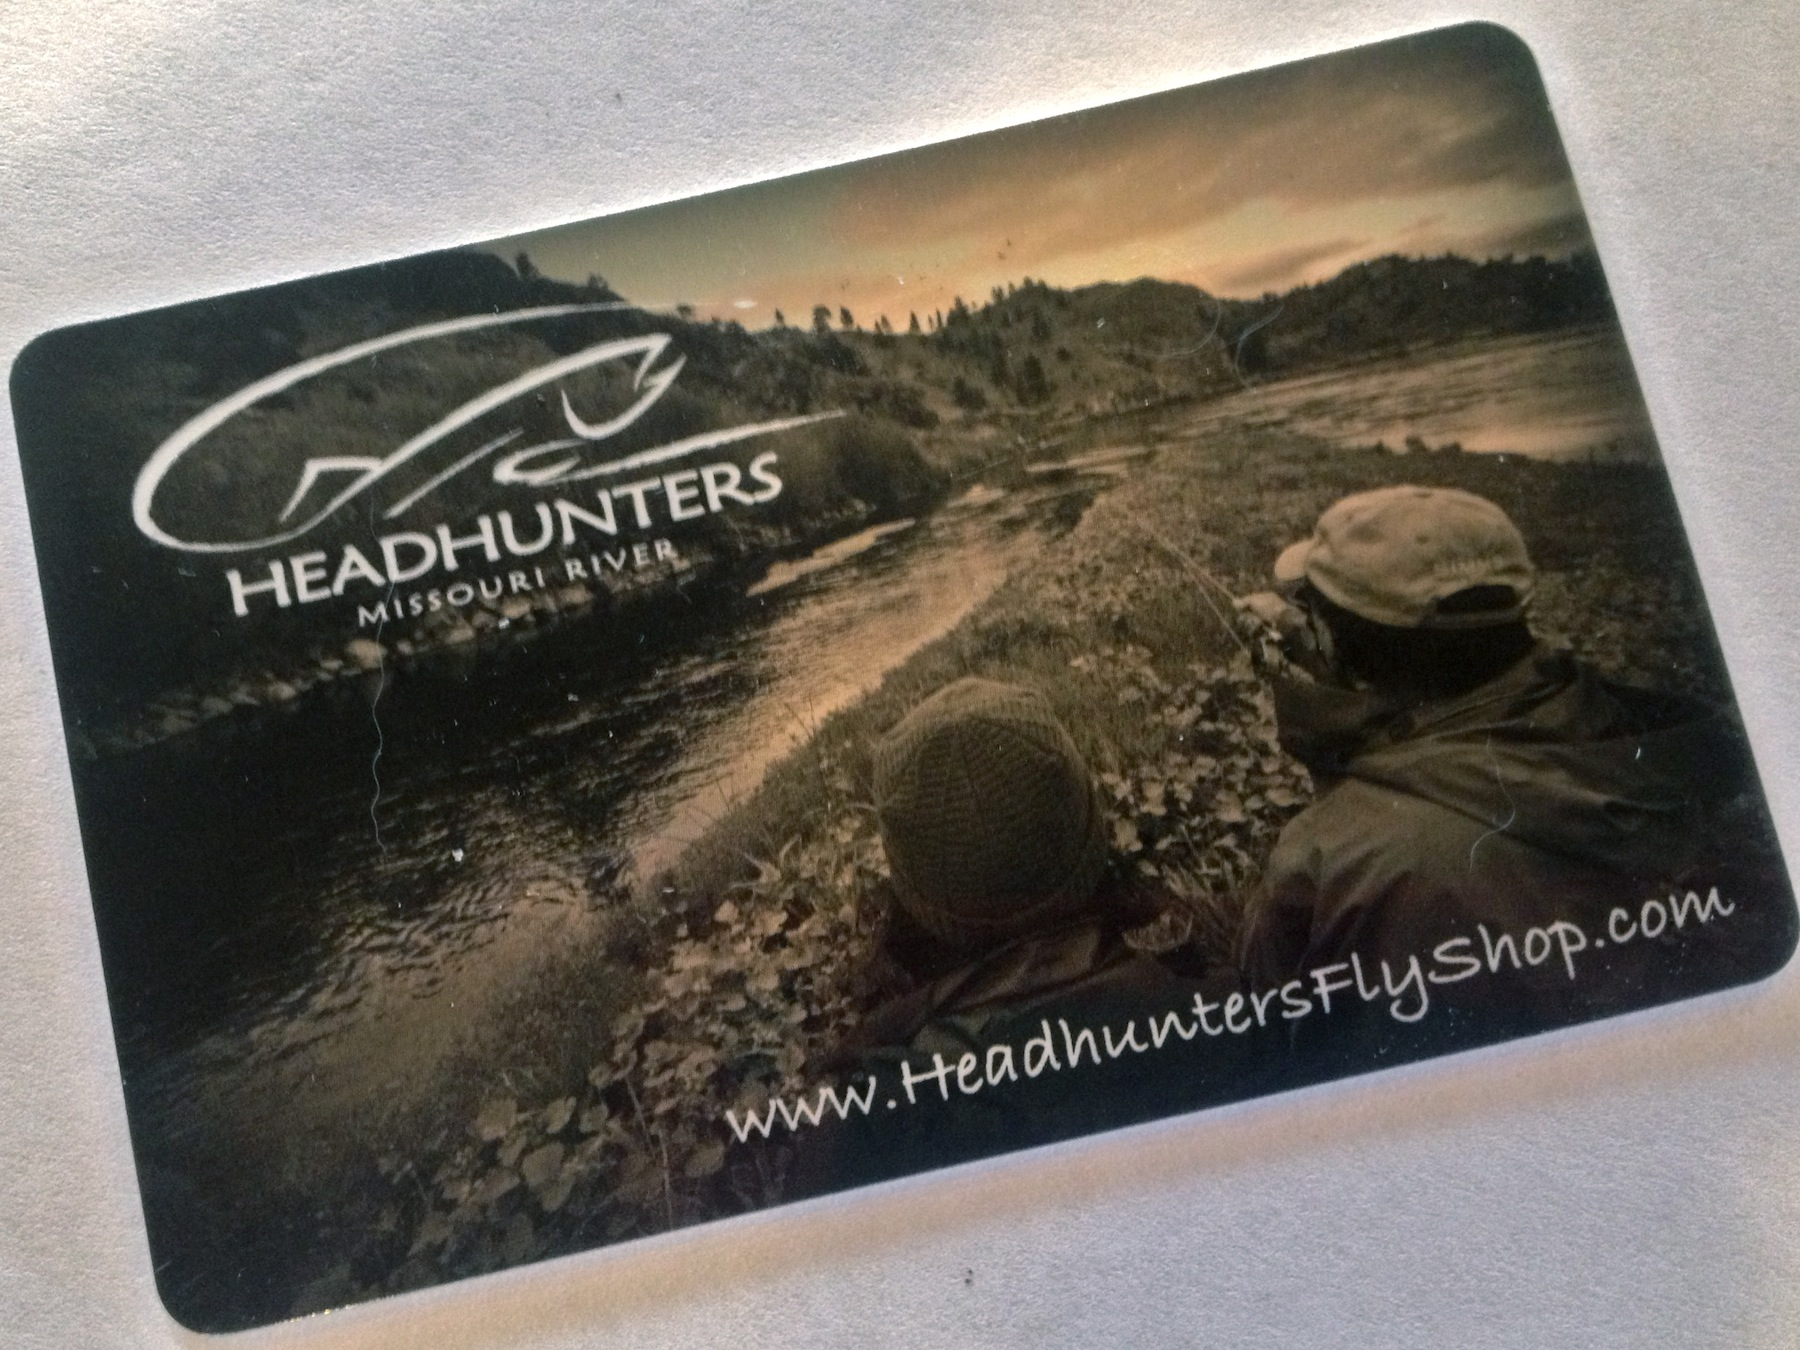 Headhunters Gift Card